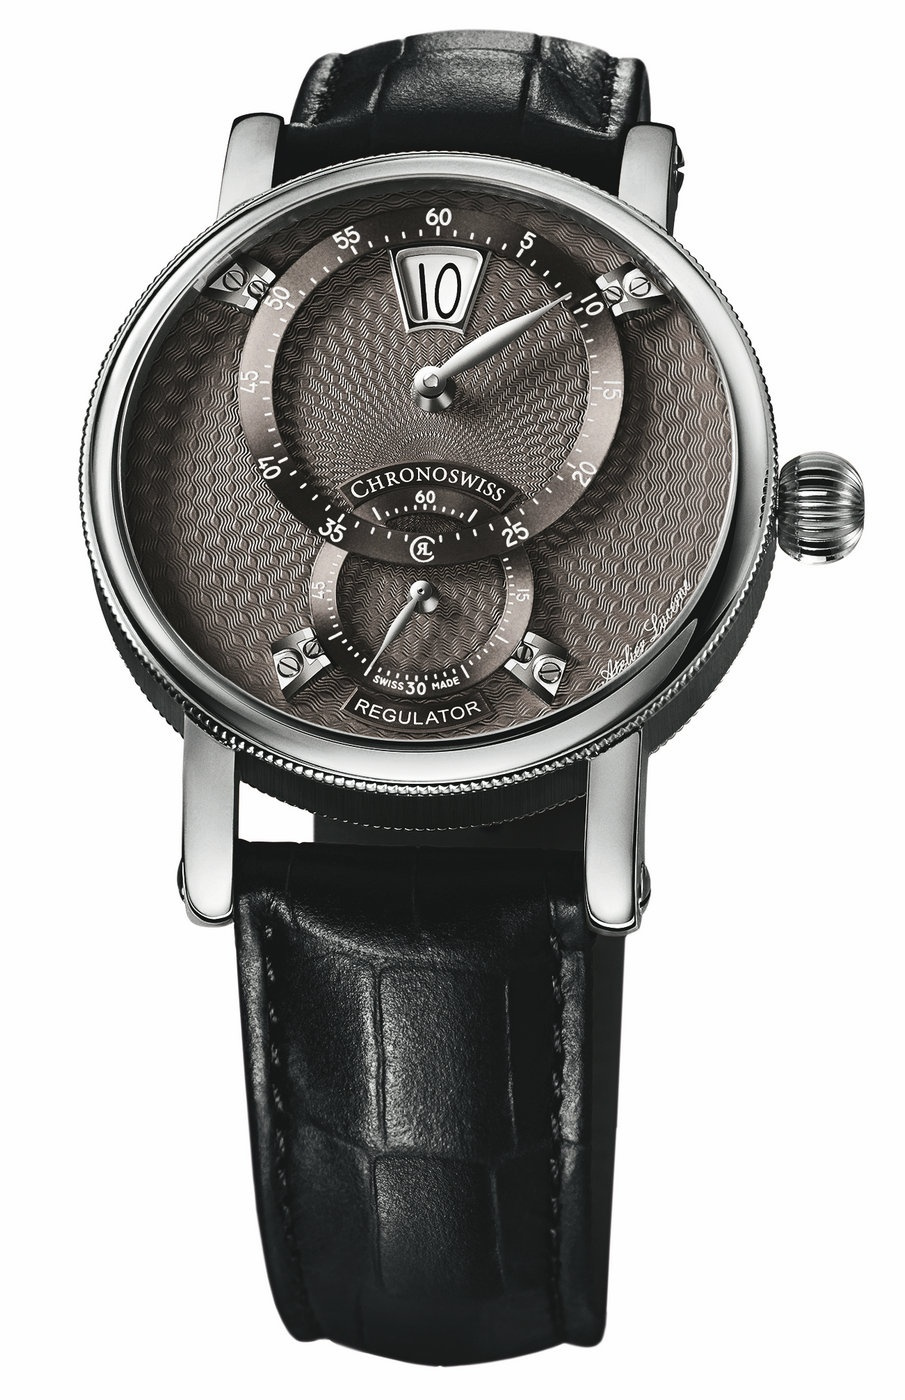 Replica chanel watches - Technical Data Of Exquisite Chronoswiss Sirius Flying Regulator Jumping Hour Fake Watches